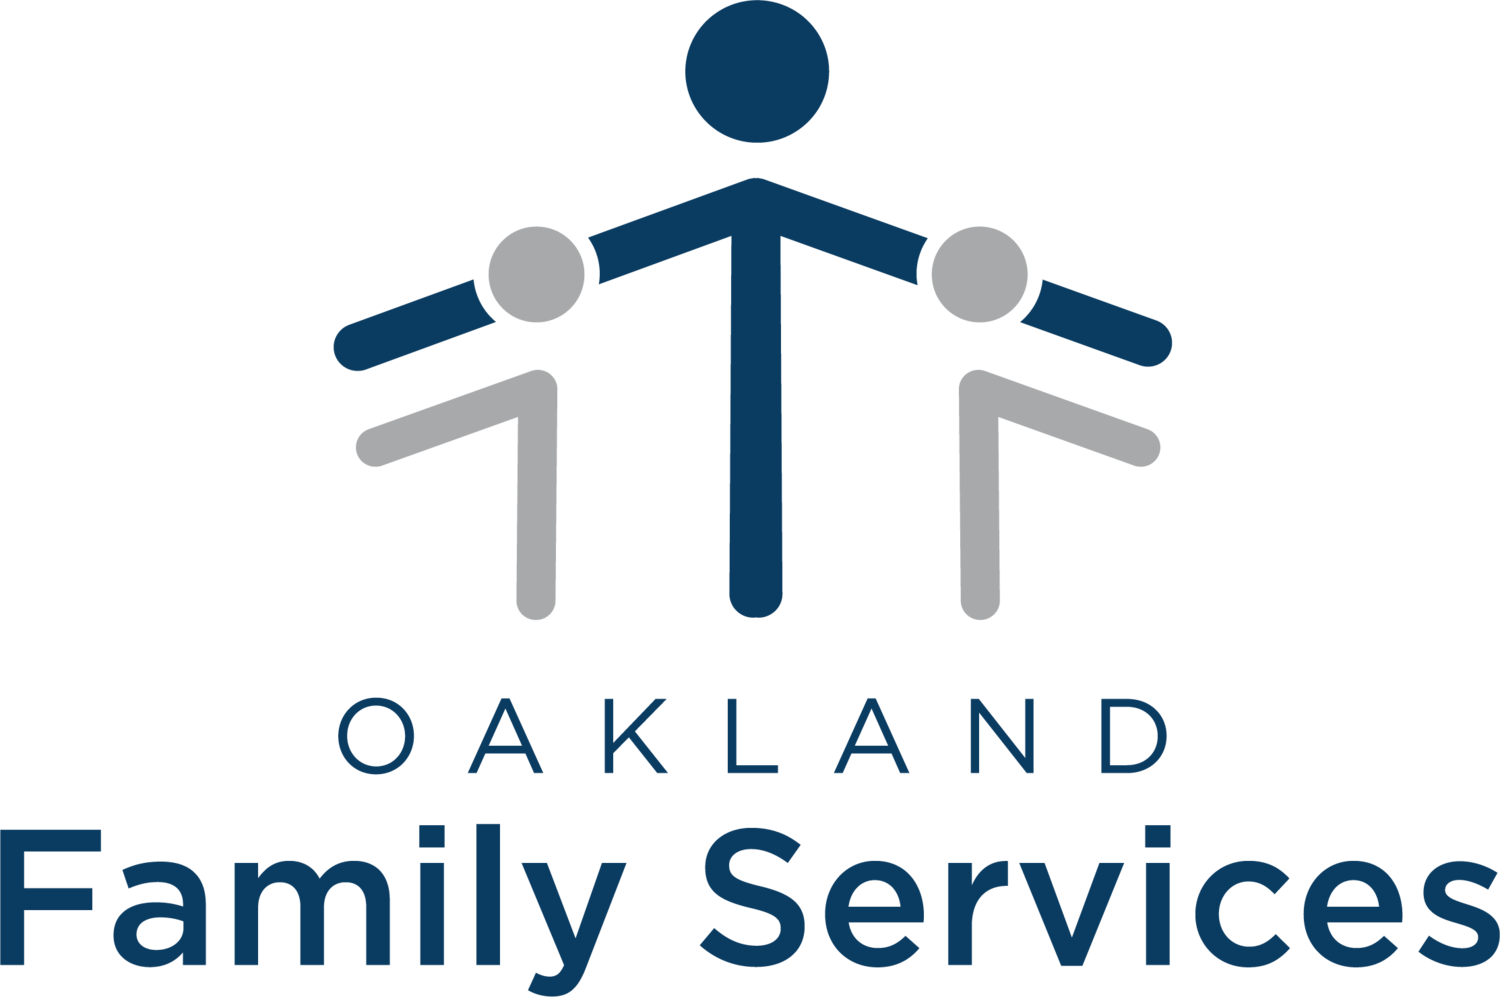 Go to Oakland Family Services website